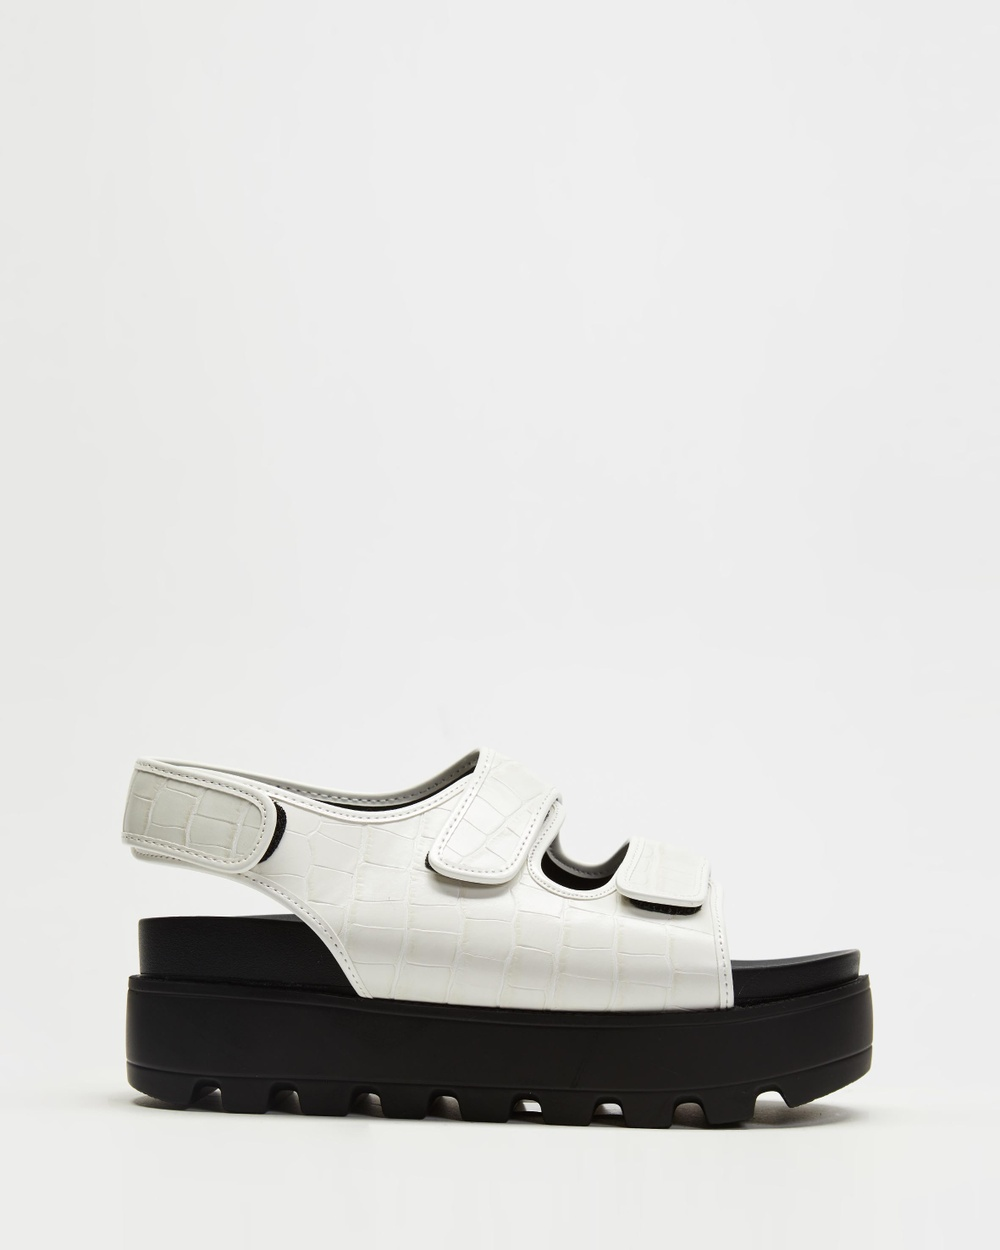 4th & Reckless Hugo Sandals White